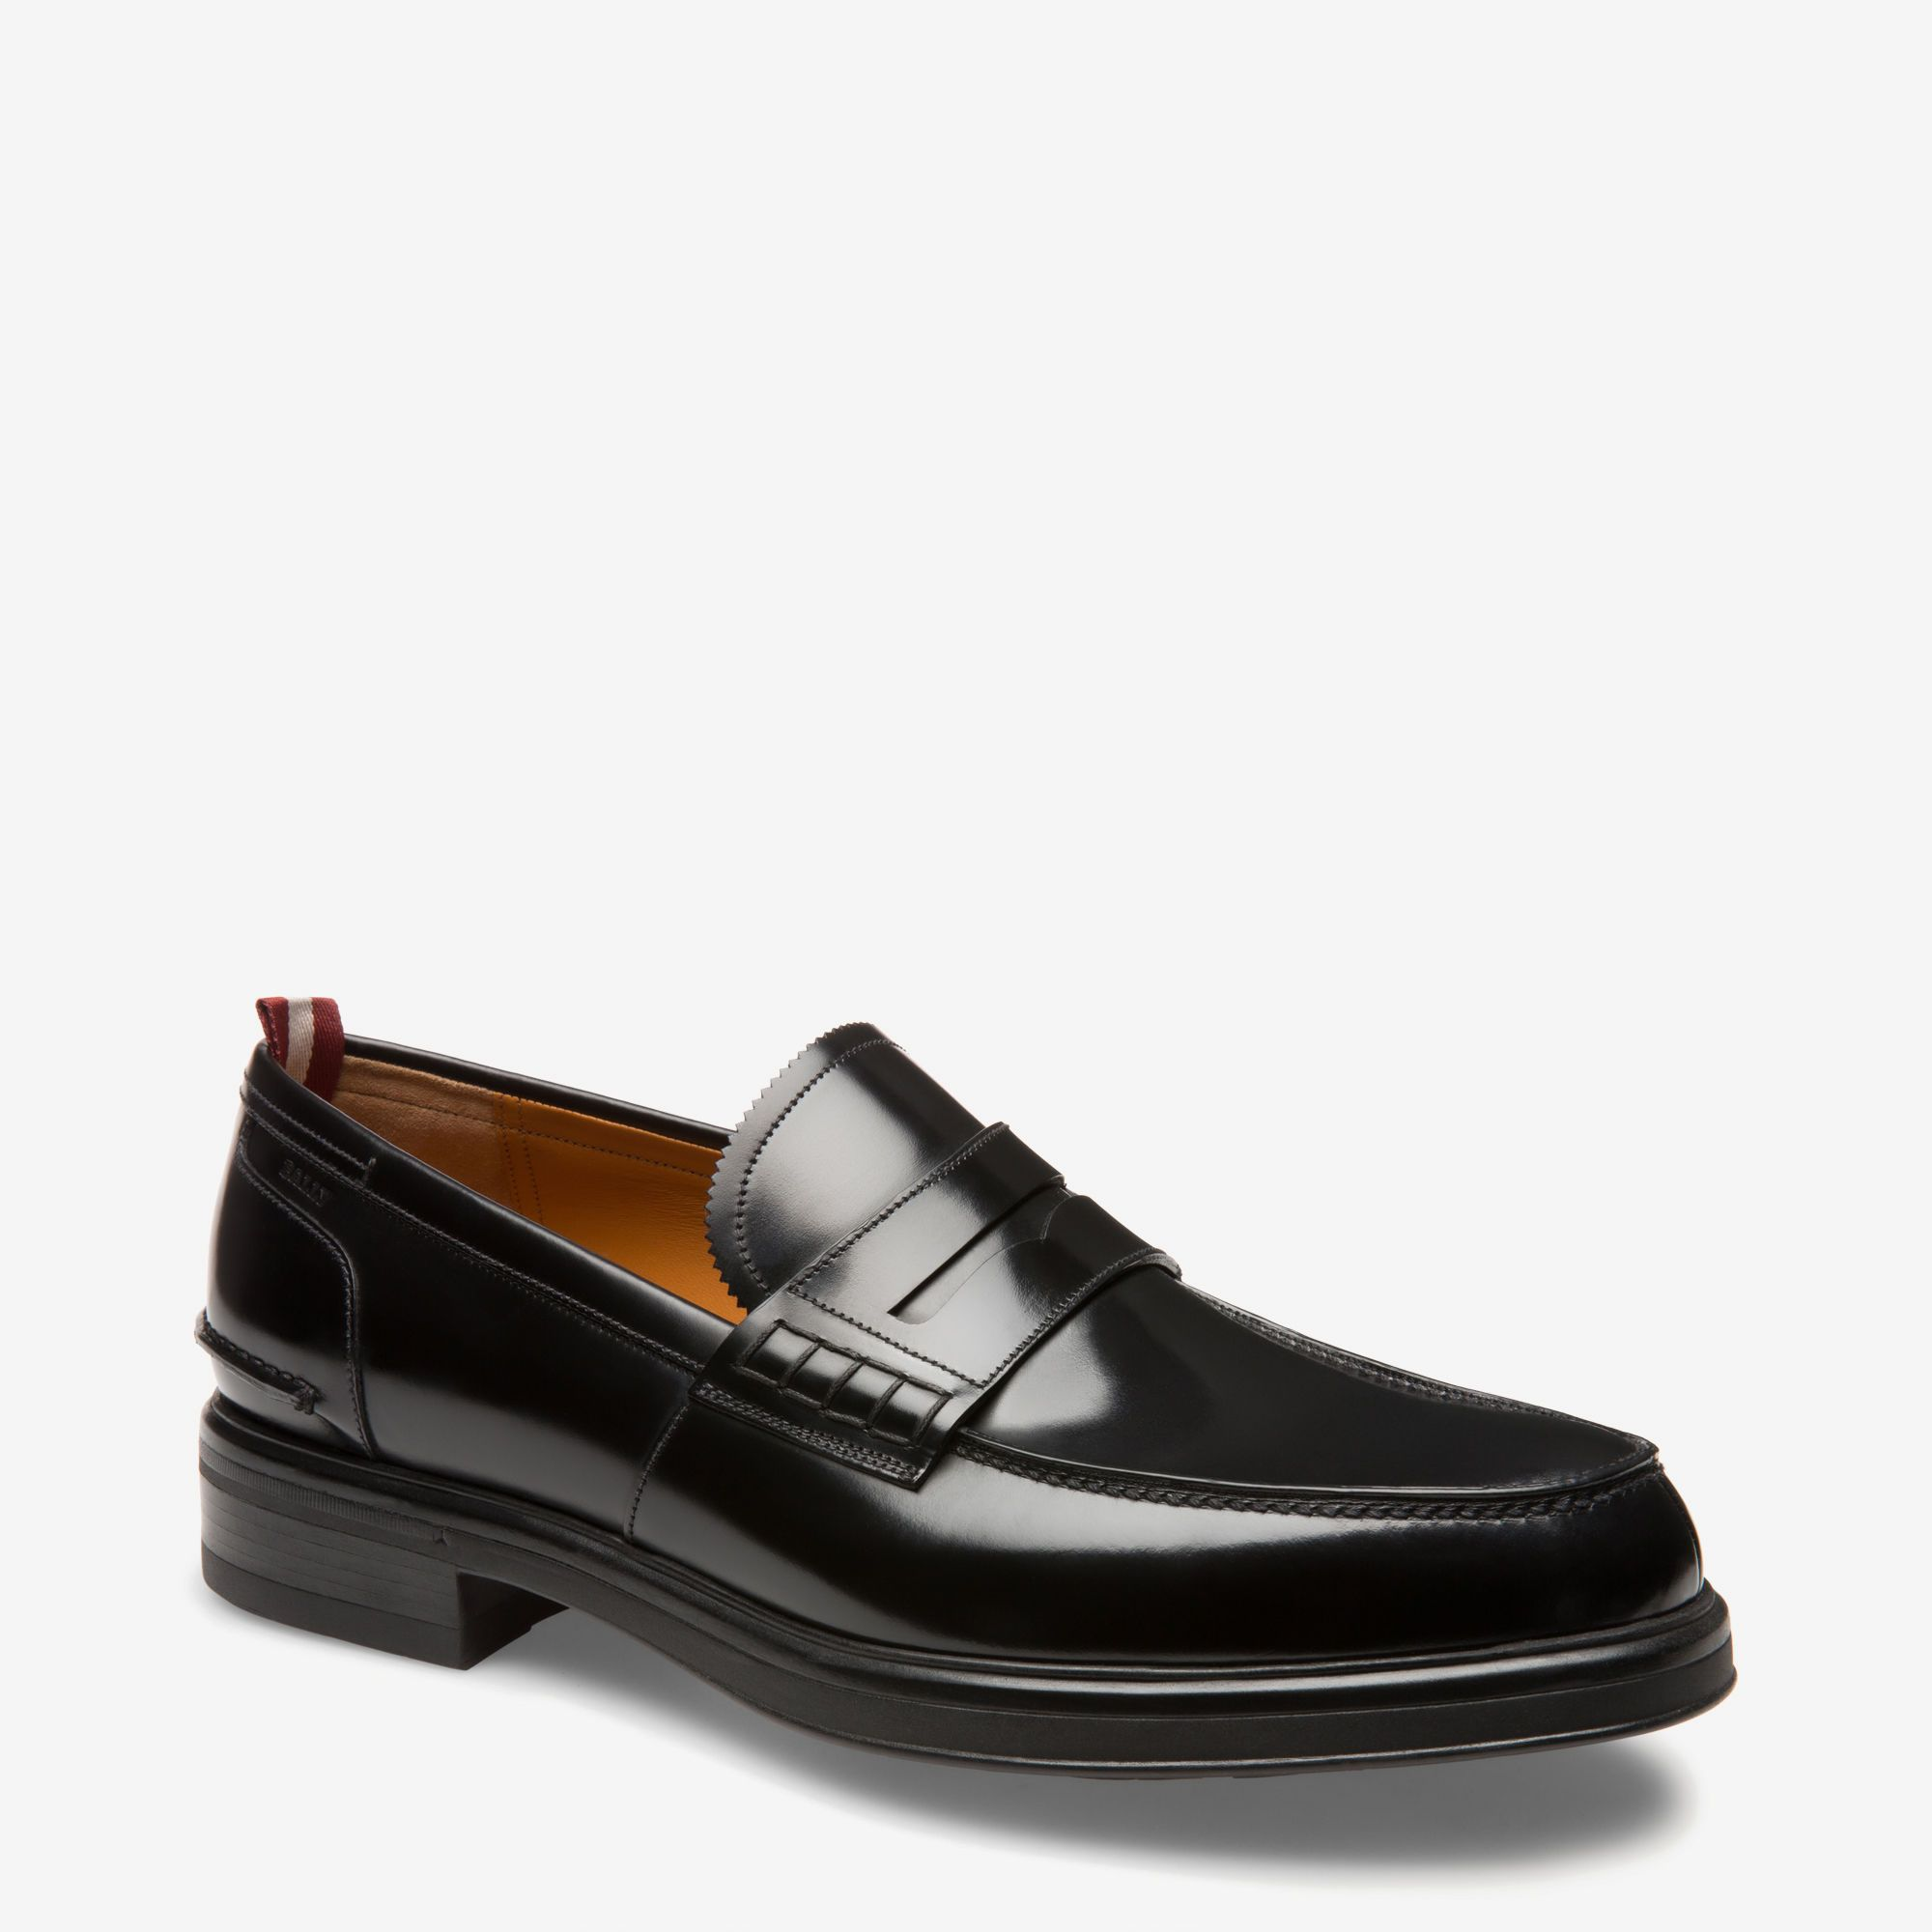 2019 year look- How to heeled wear penny loafers